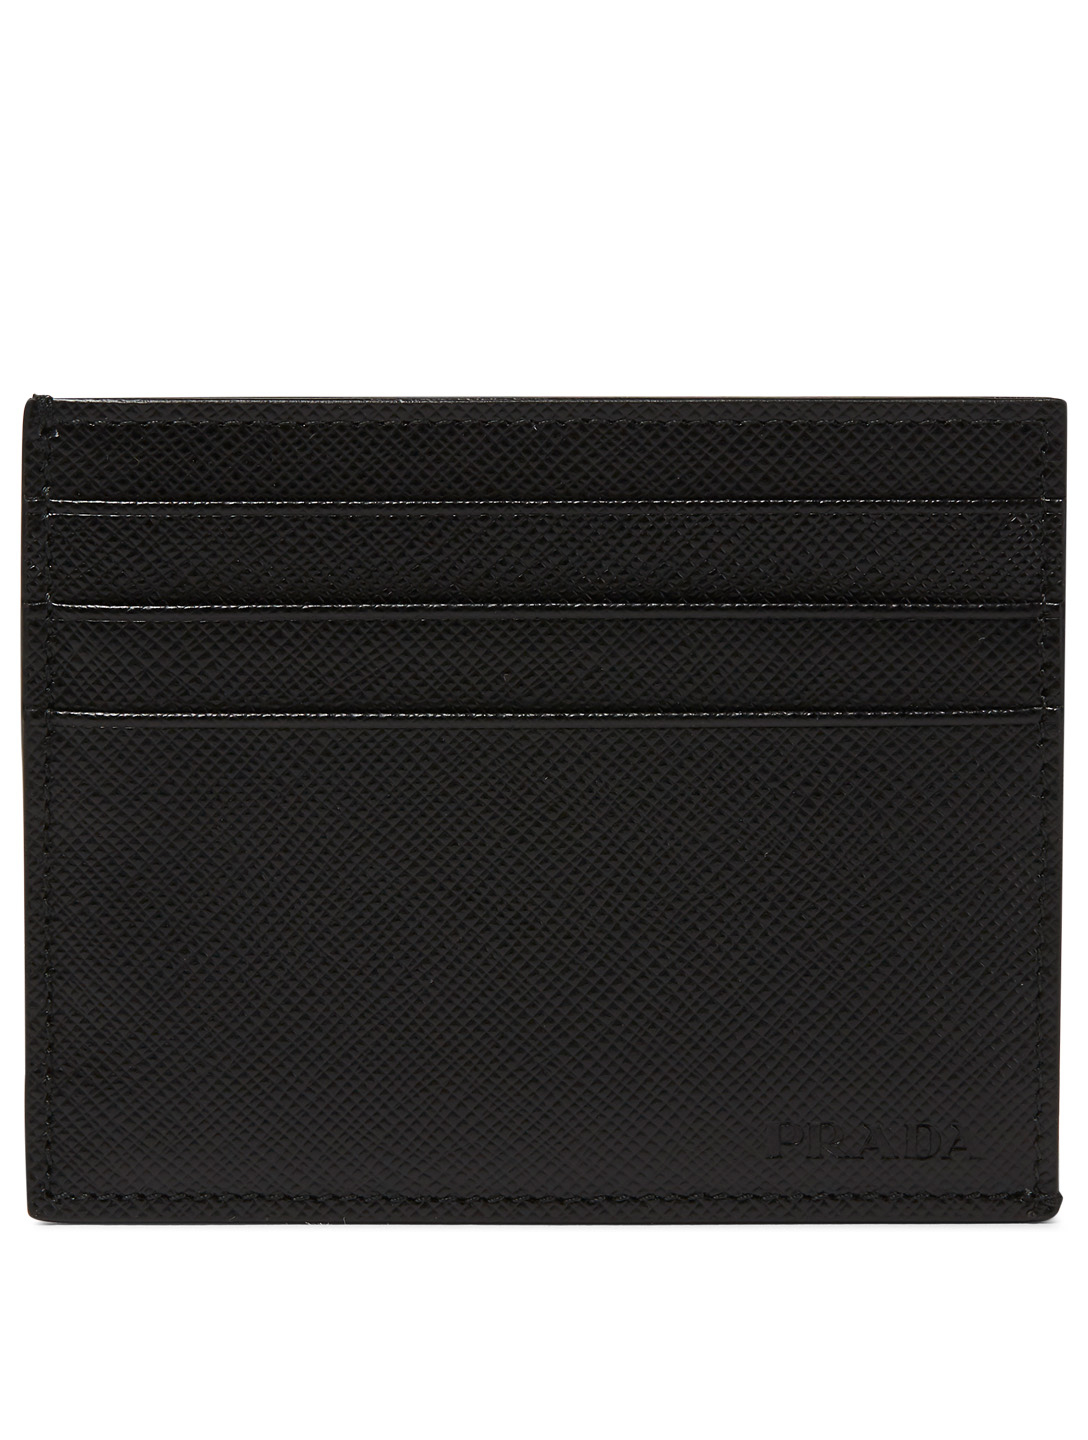 469ddef327ac70 PRADA Saffiano Leather Card Holder Men's Black ...